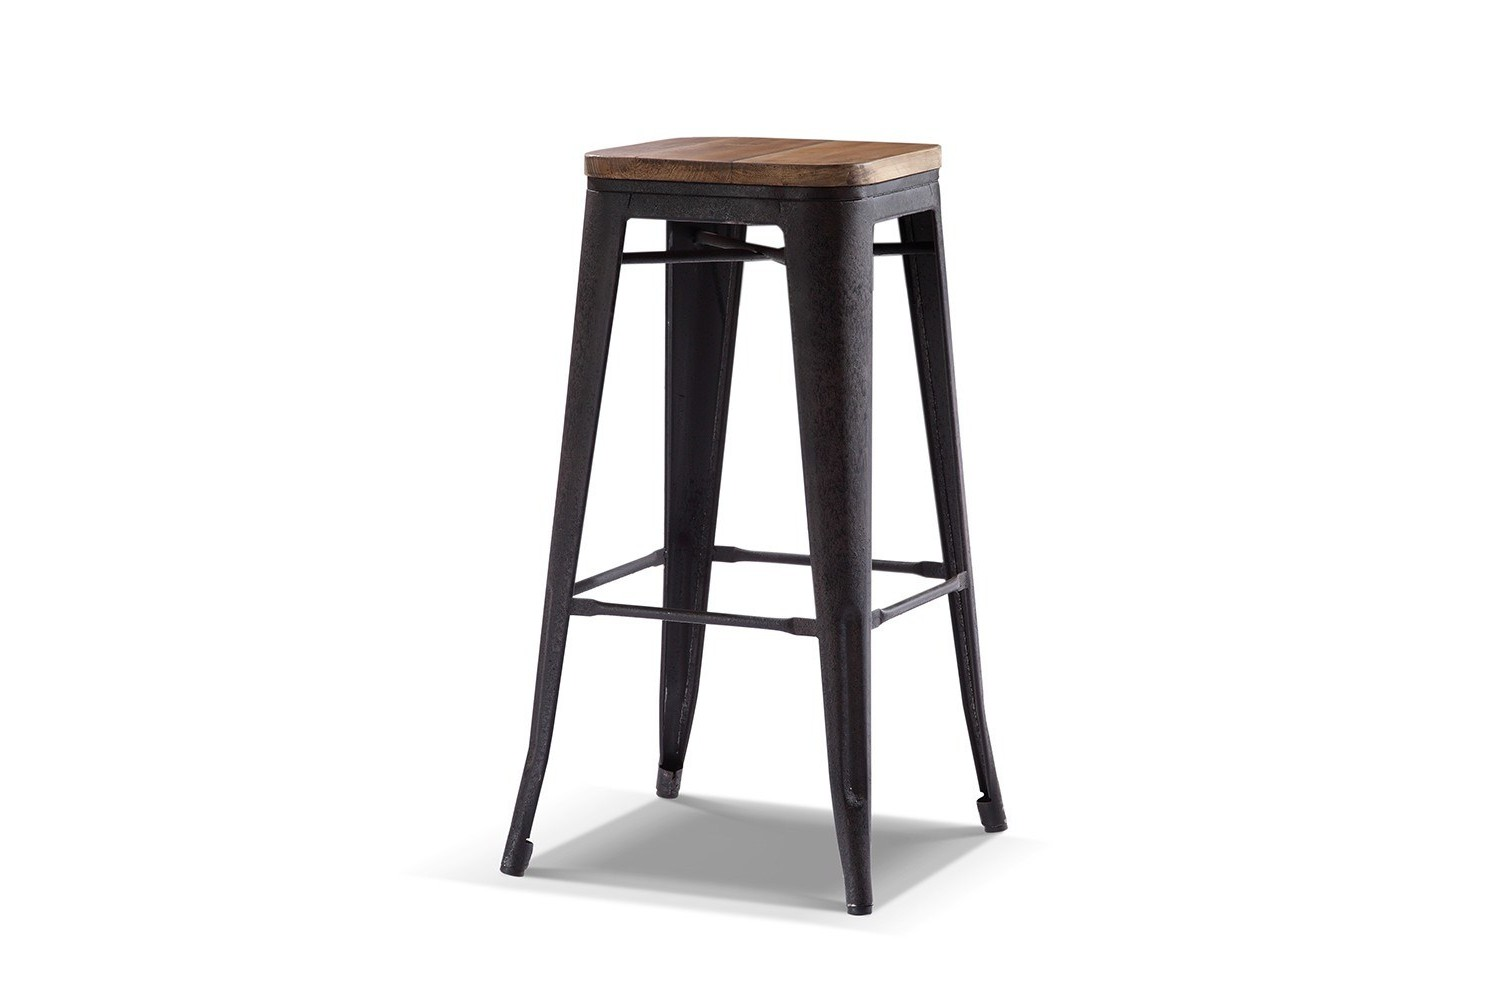 ikea tabourets de bar henriksdal tabouret de bar dossier ikea tabouret de bar bois ikea r. Black Bedroom Furniture Sets. Home Design Ideas